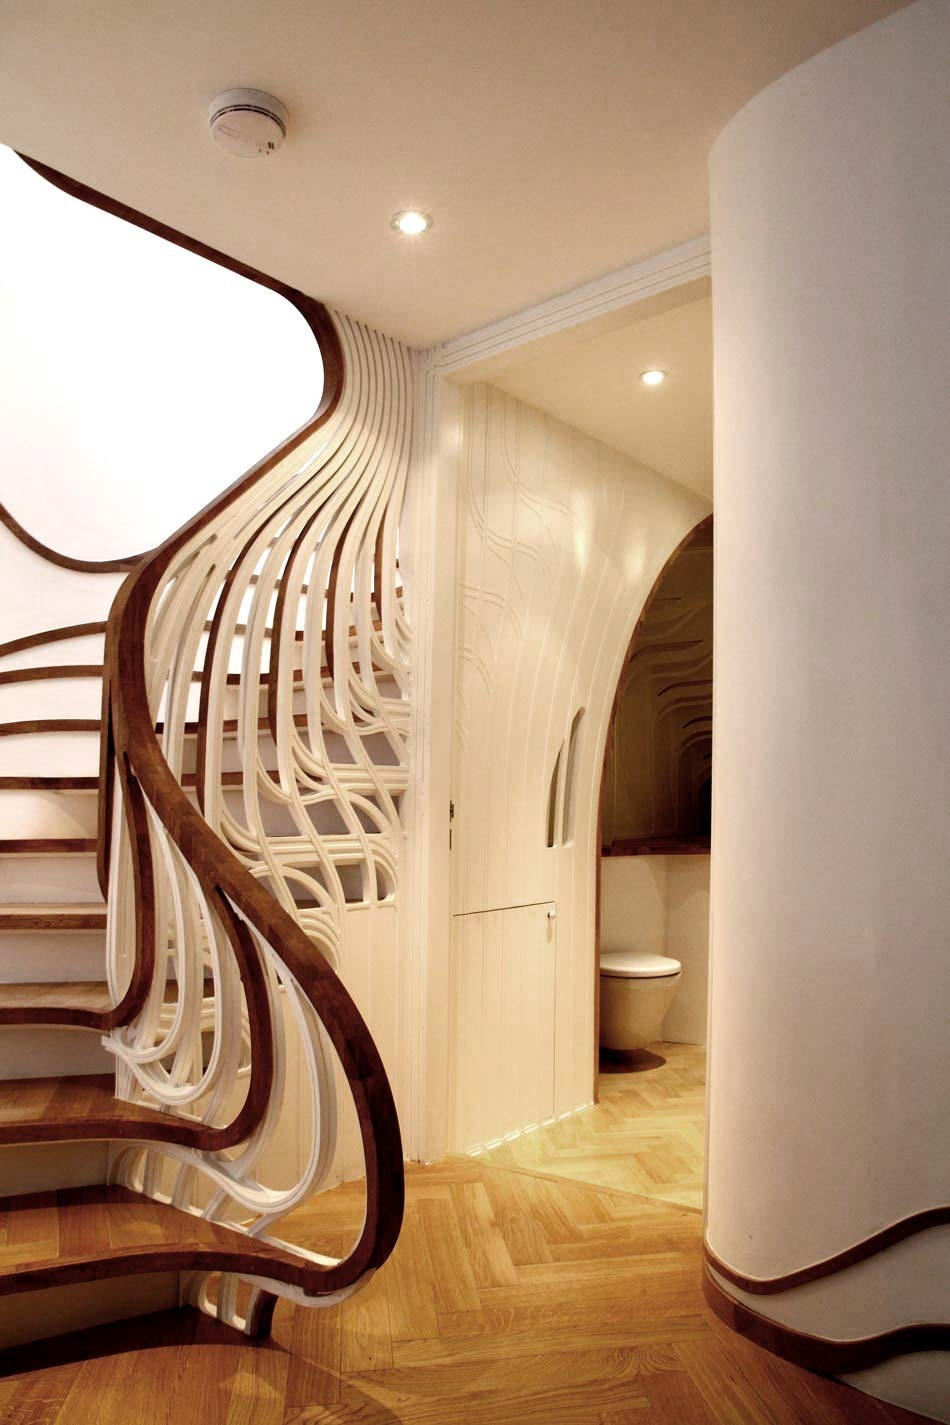 This is just a cool staircase